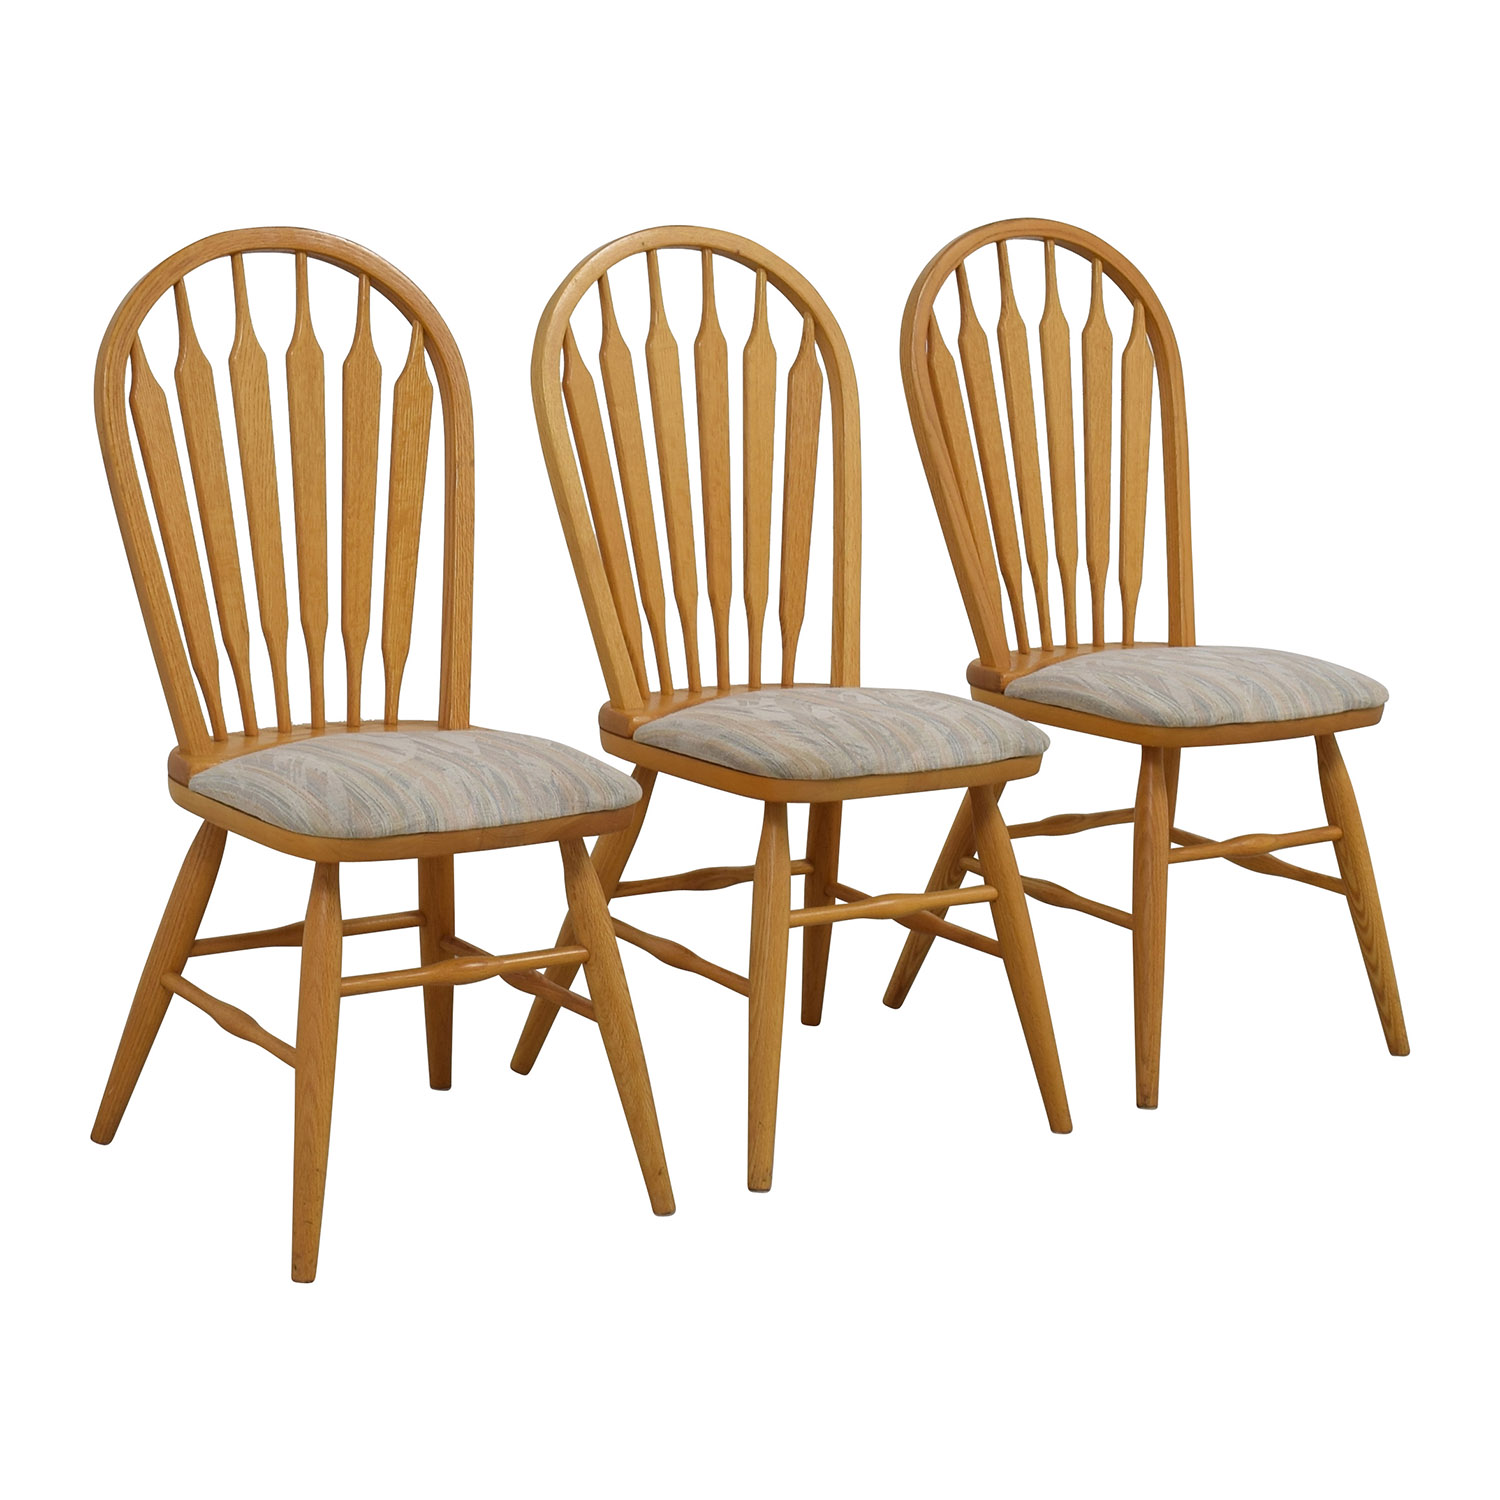 12% OFF - Dinaire Dinaire Kitchen Chairs with Cushions / Chairs